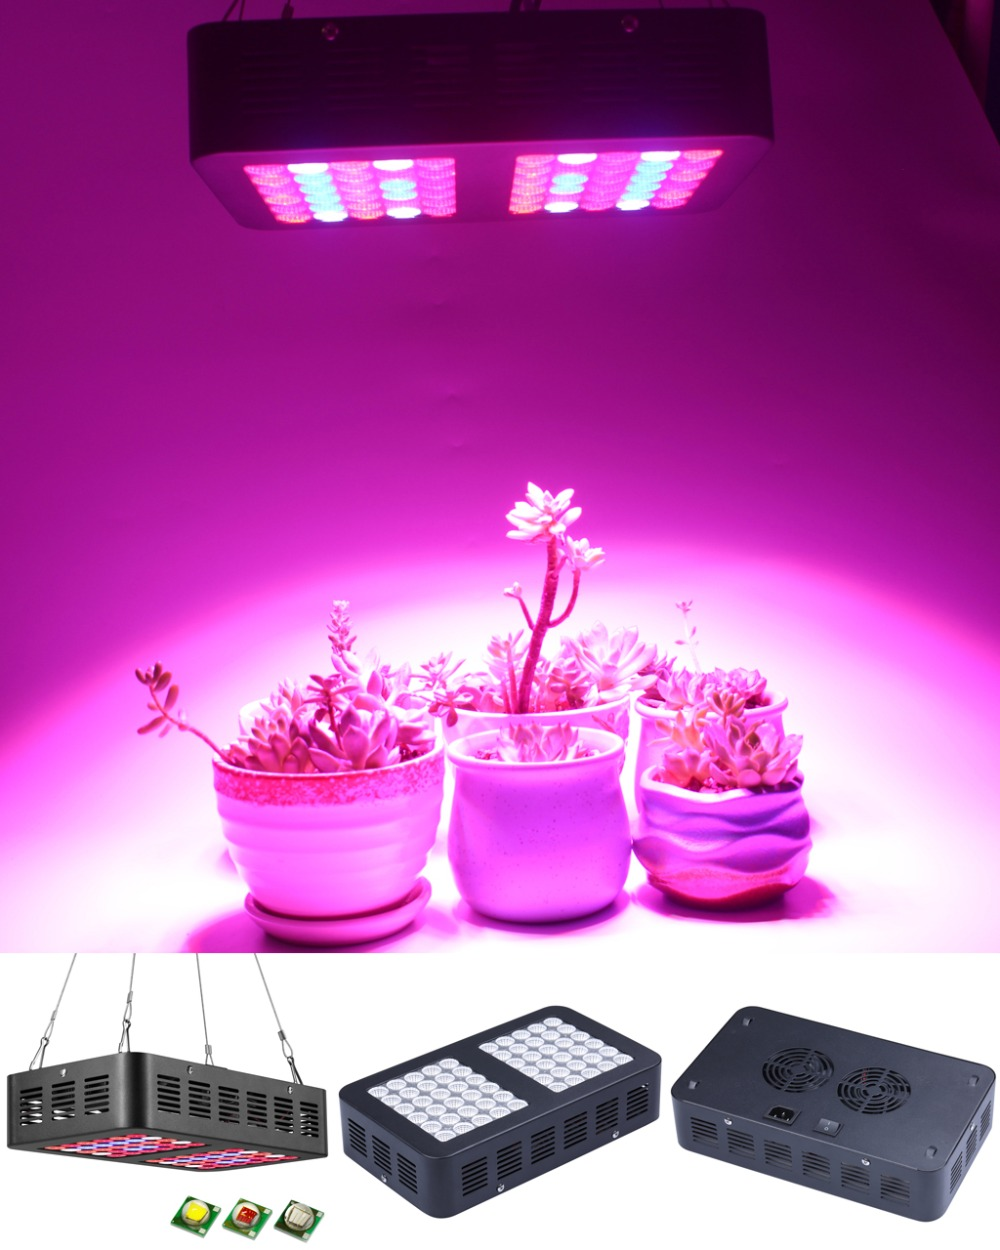 Reflector 300W LED Grow Light Full Spectrum for Indoor Greenhouse grow tent Plants Veg Flower Lamp plants grow led light 2pcs full spectrum led grow light 400w grow lights indoor plant lamp for plants flower greenhouse grow box tent bloom ae